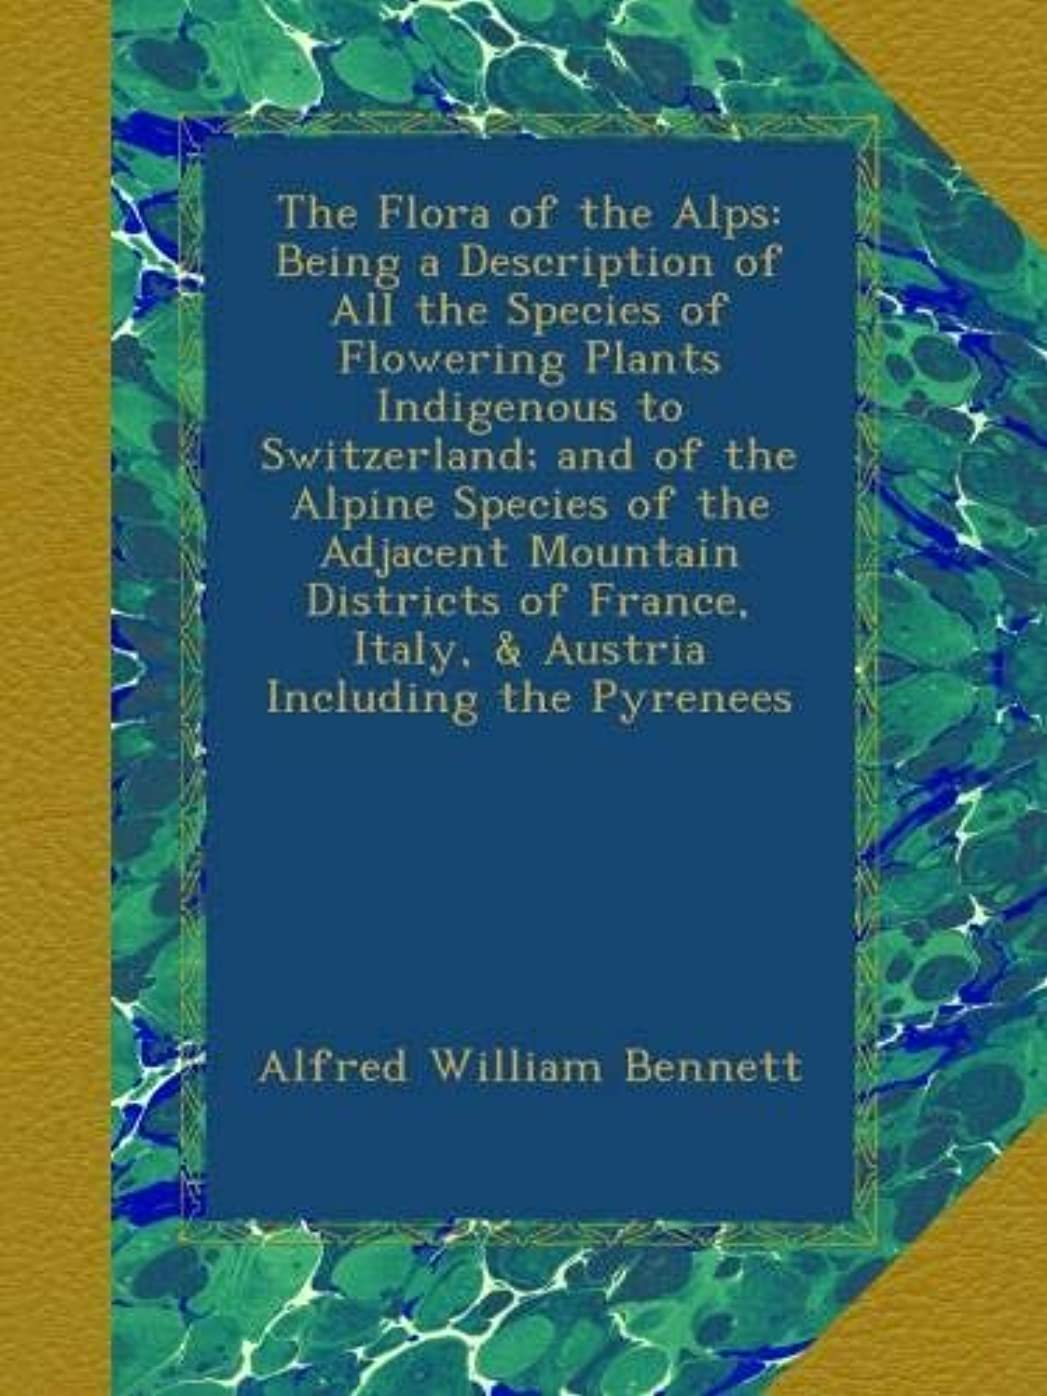 乱暴なる虐待The Flora of the Alps: Being a Description of All the Species of Flowering Plants Indigenous to Switzerland; and of the Alpine Species of the Adjacent Mountain Districts of France, Italy, & Austria Including the Pyrenees